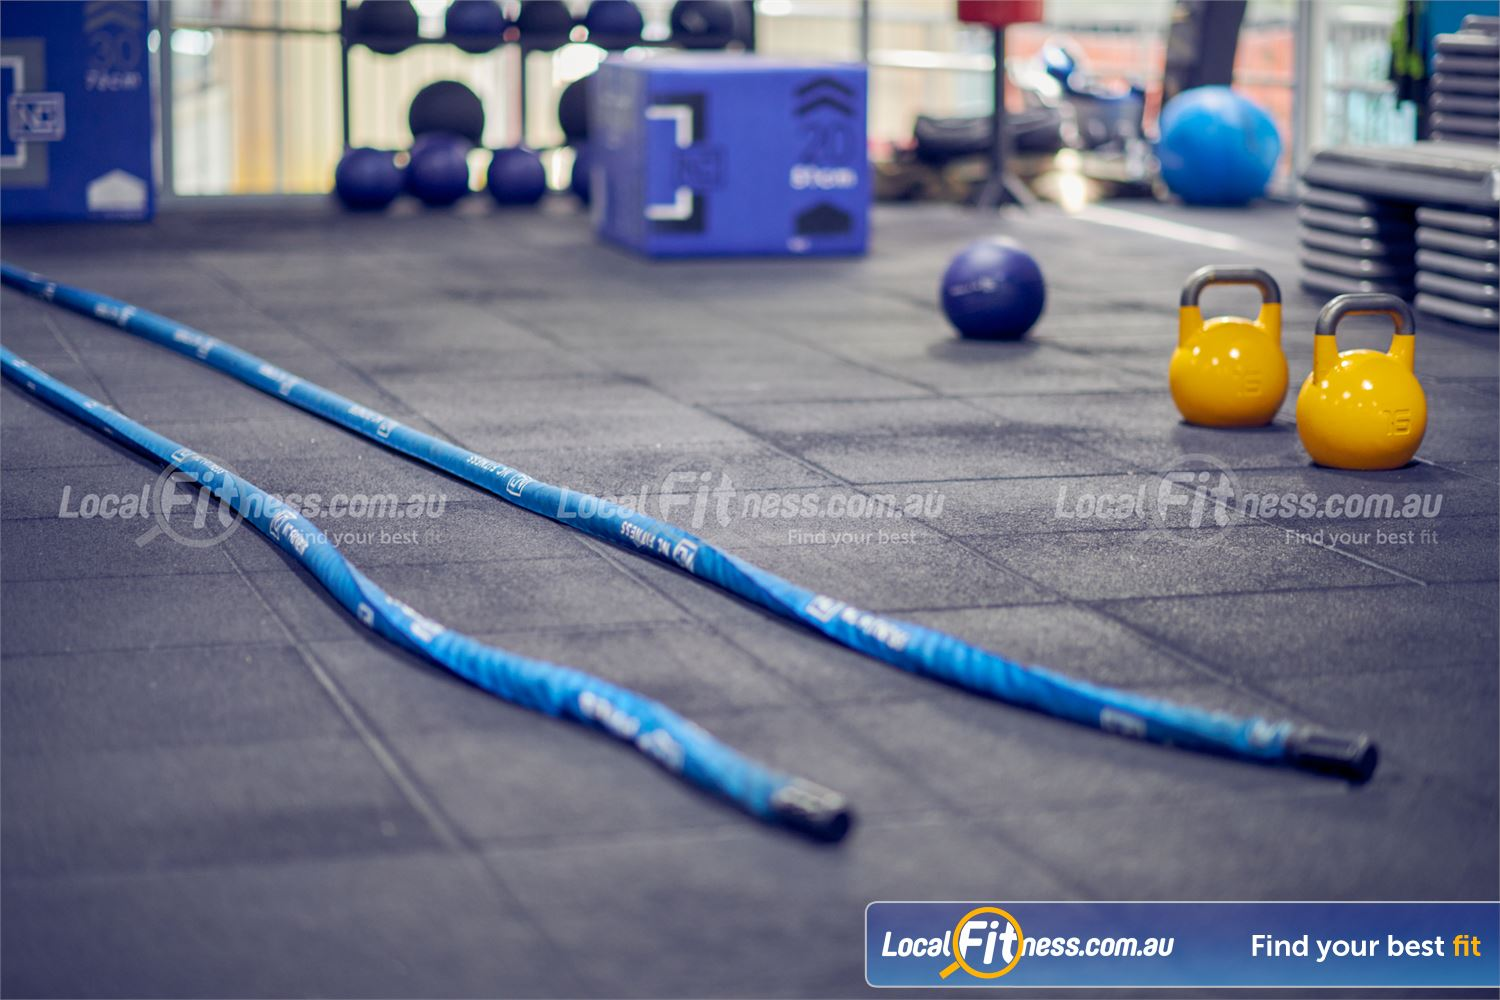 Knox Leisureworks Near Tremont Our Boronia gym is fully equipped with battle ropes, kettlebells, foam boxes and more.